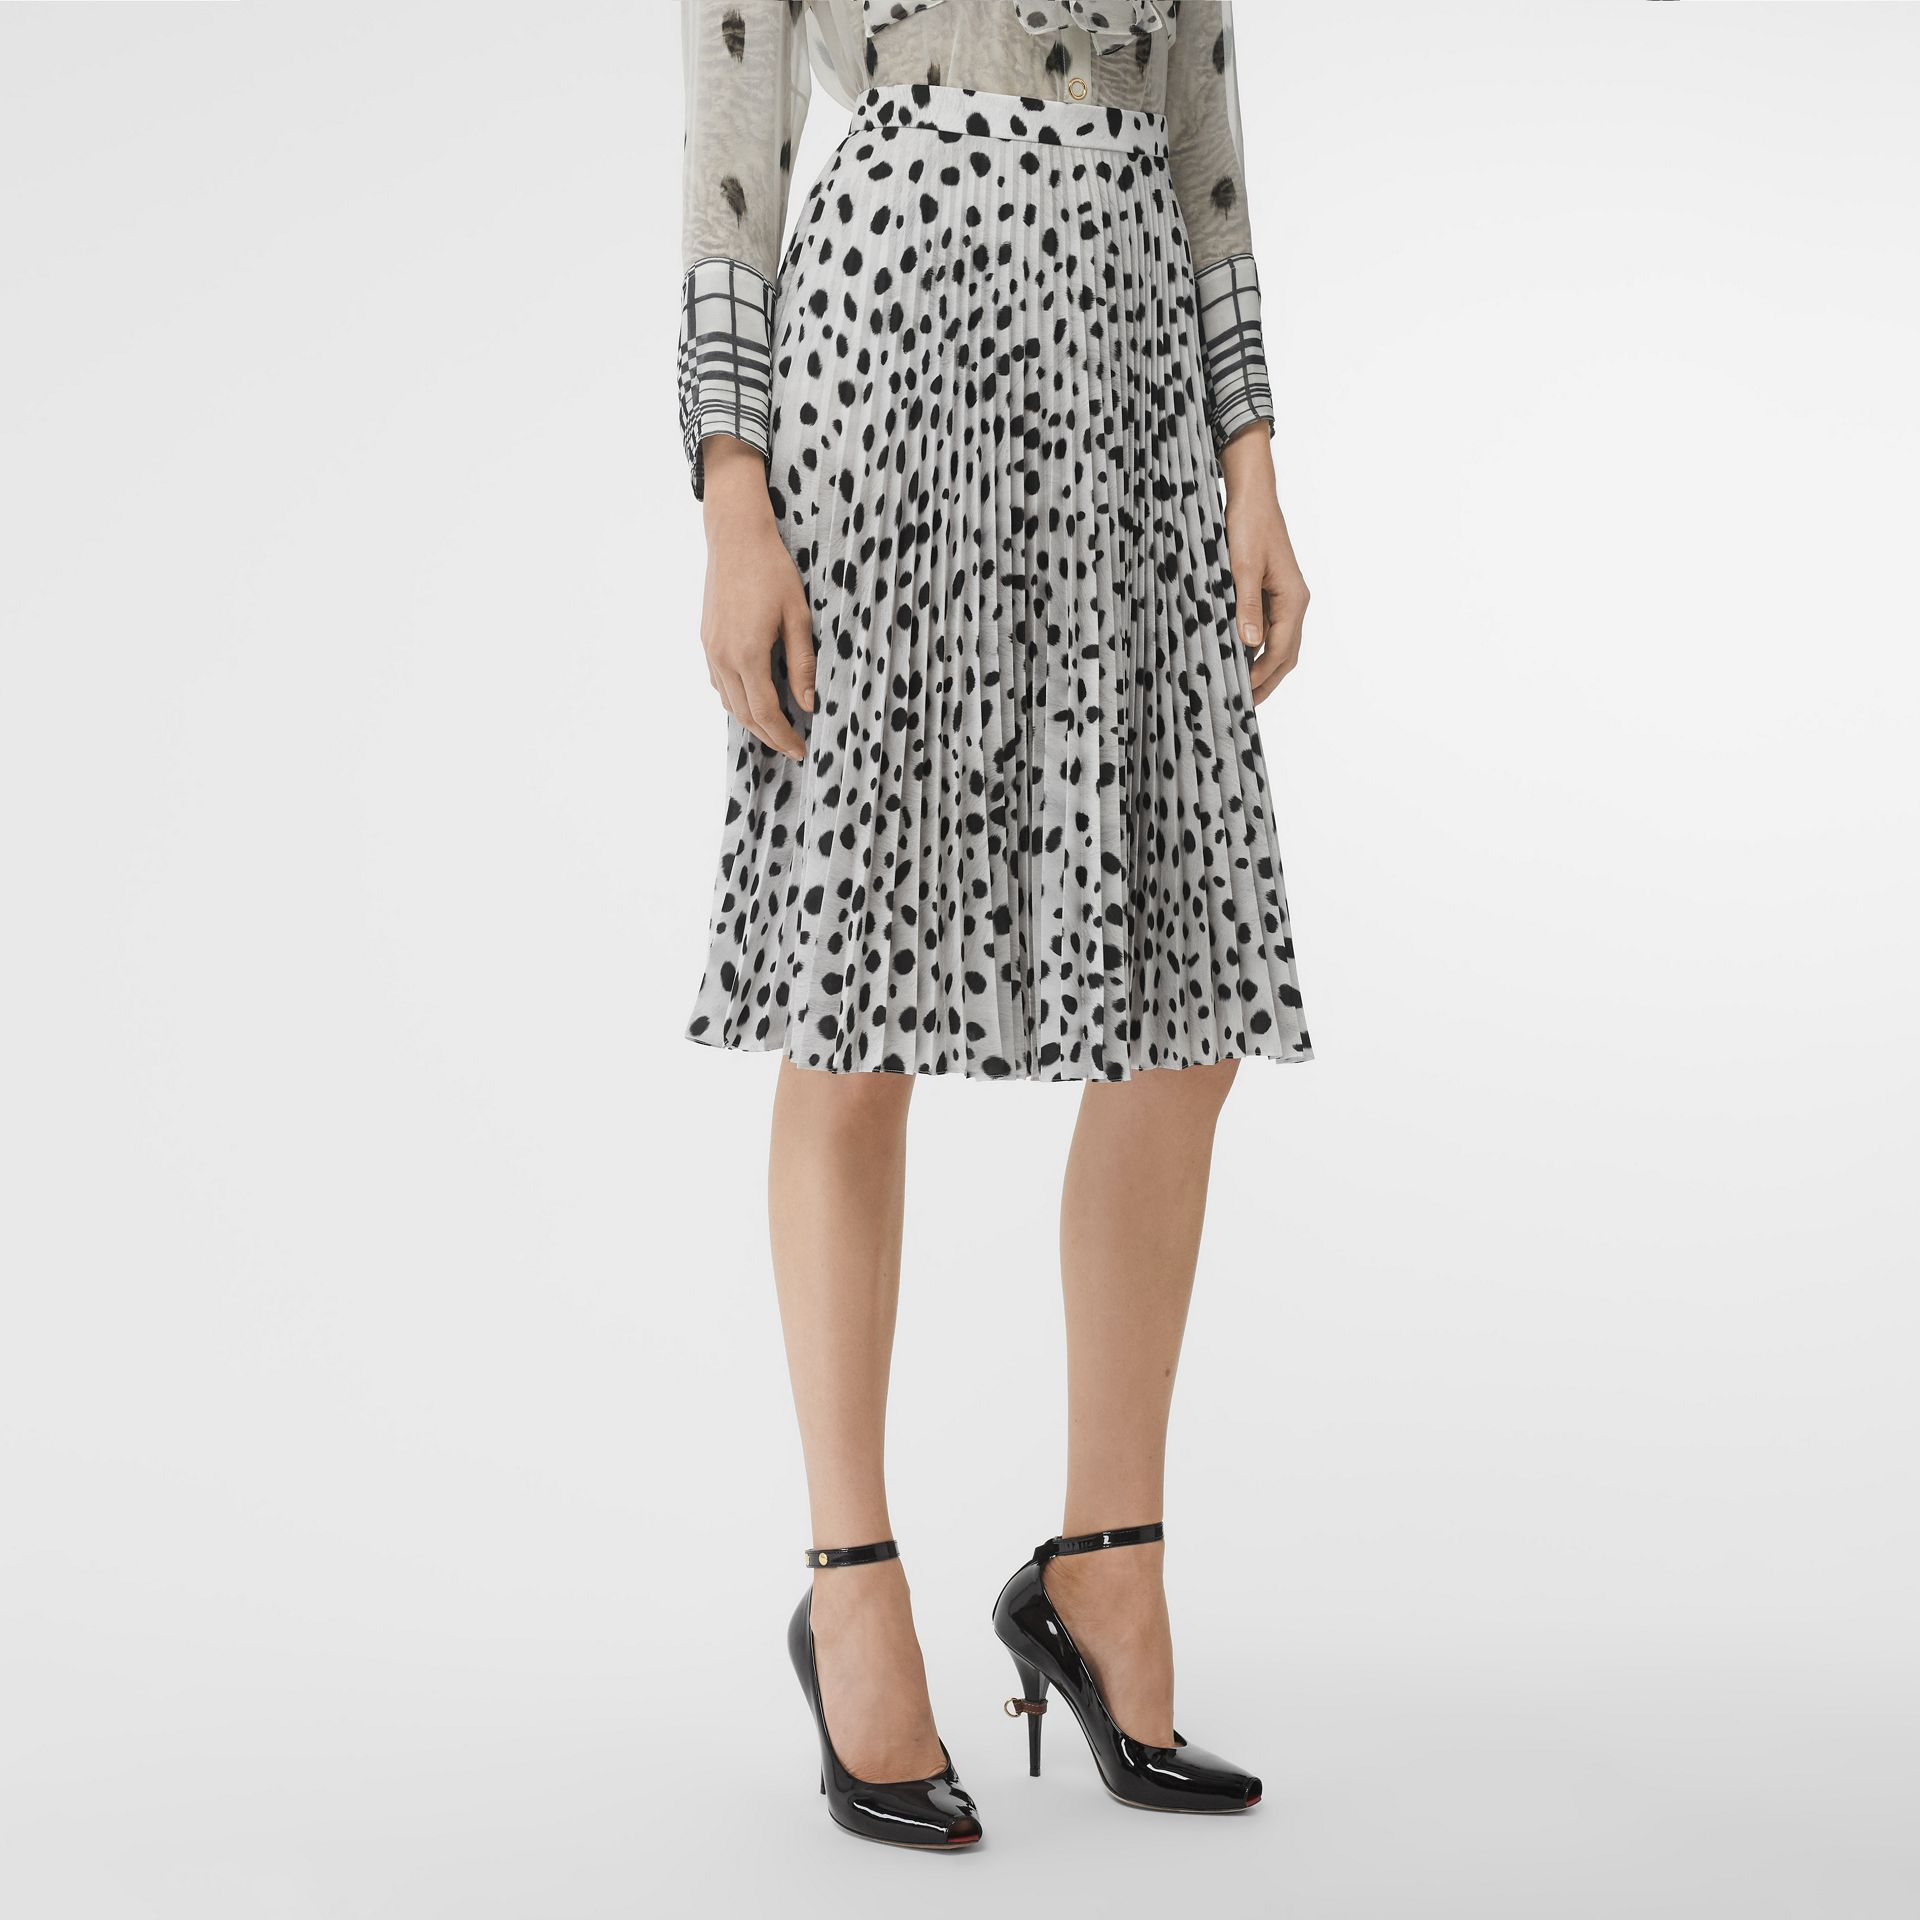 Dalmatian Print Crepe Pleated Skirt in Black/white - Women | Burberry Australia - gallery image 4